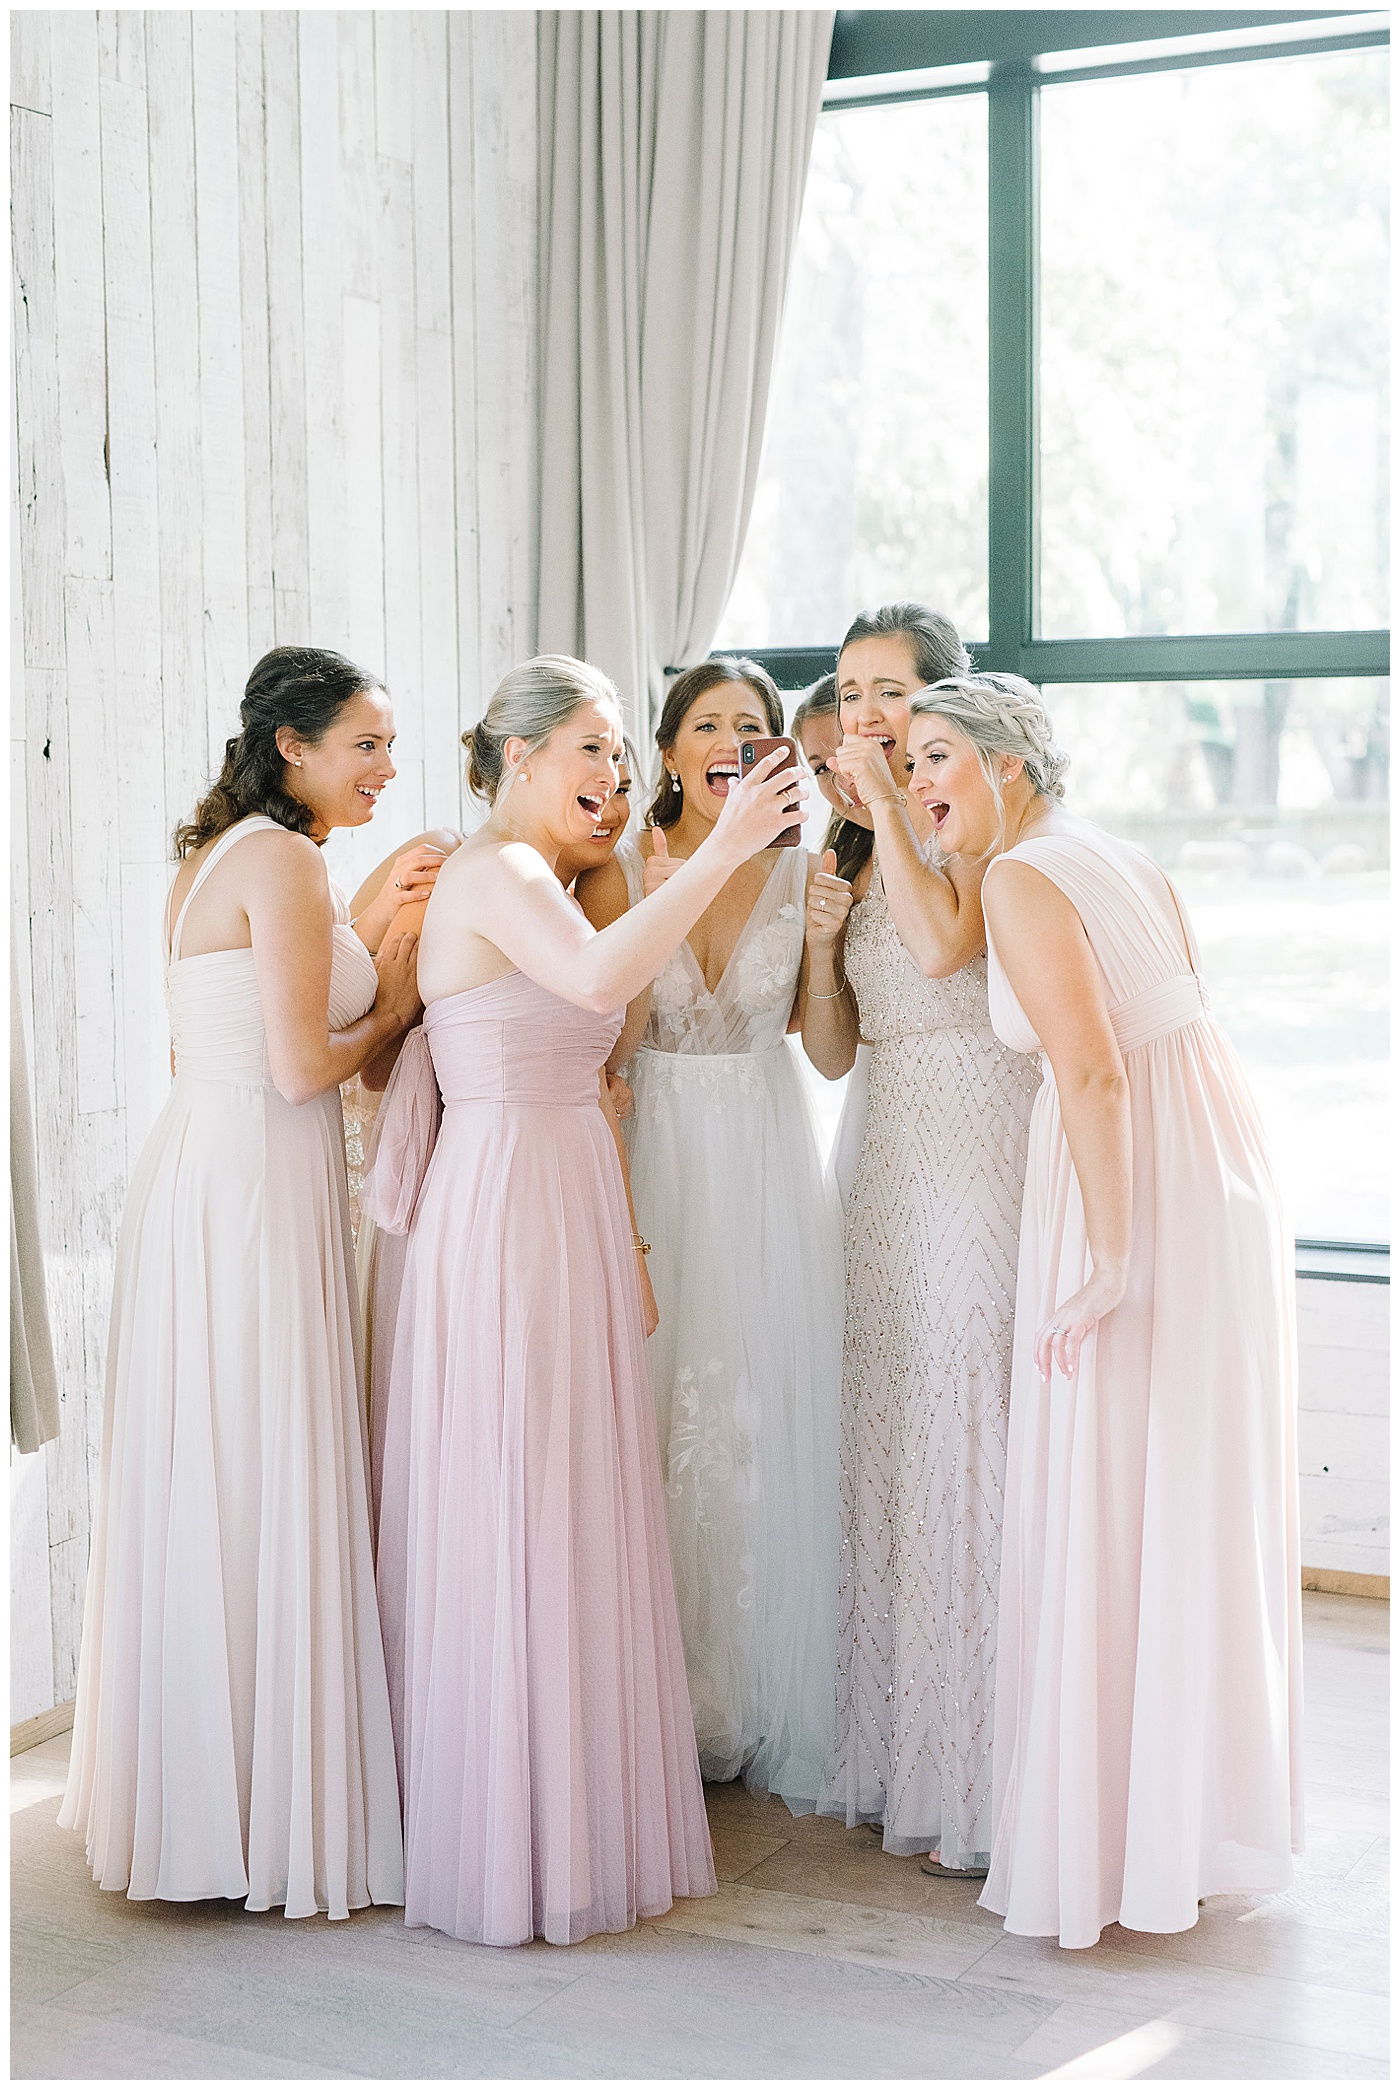 bridesmaids facetiming friend